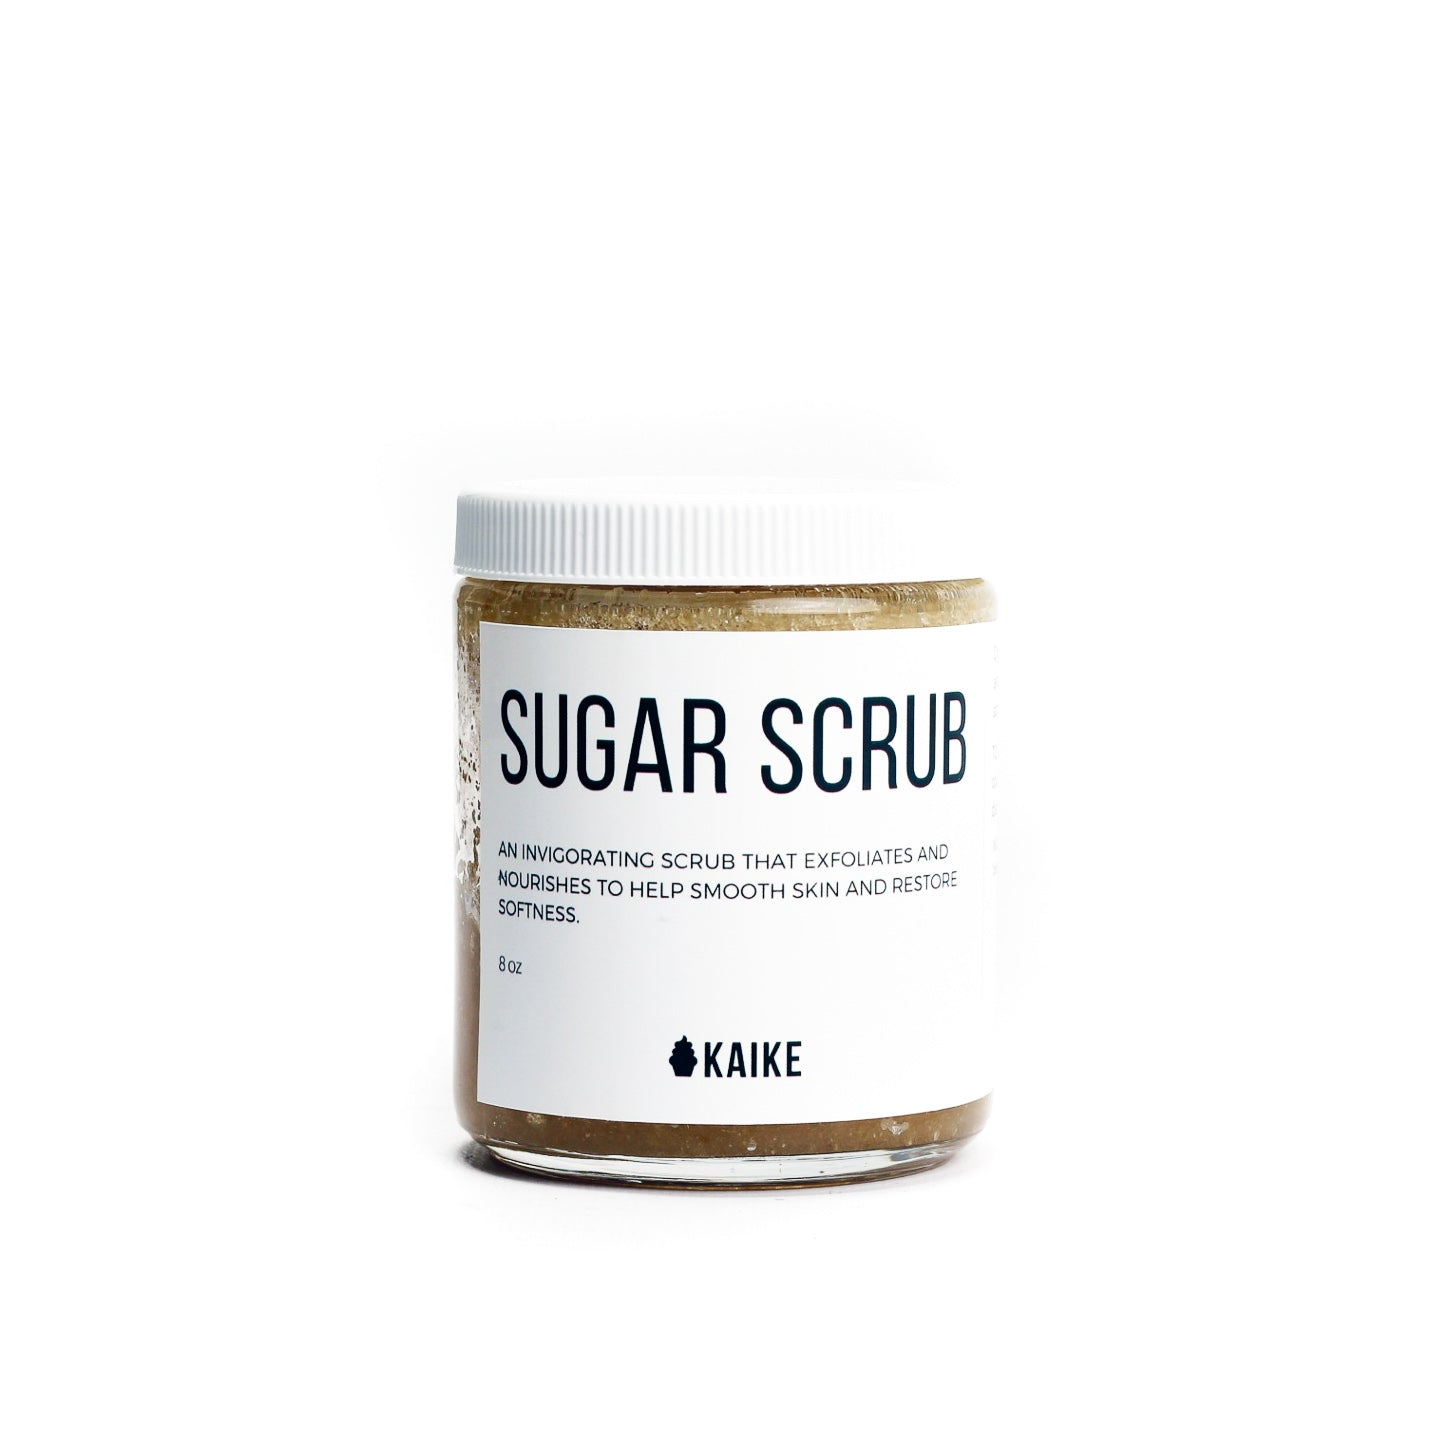 Sugar Scrub - 8 oz